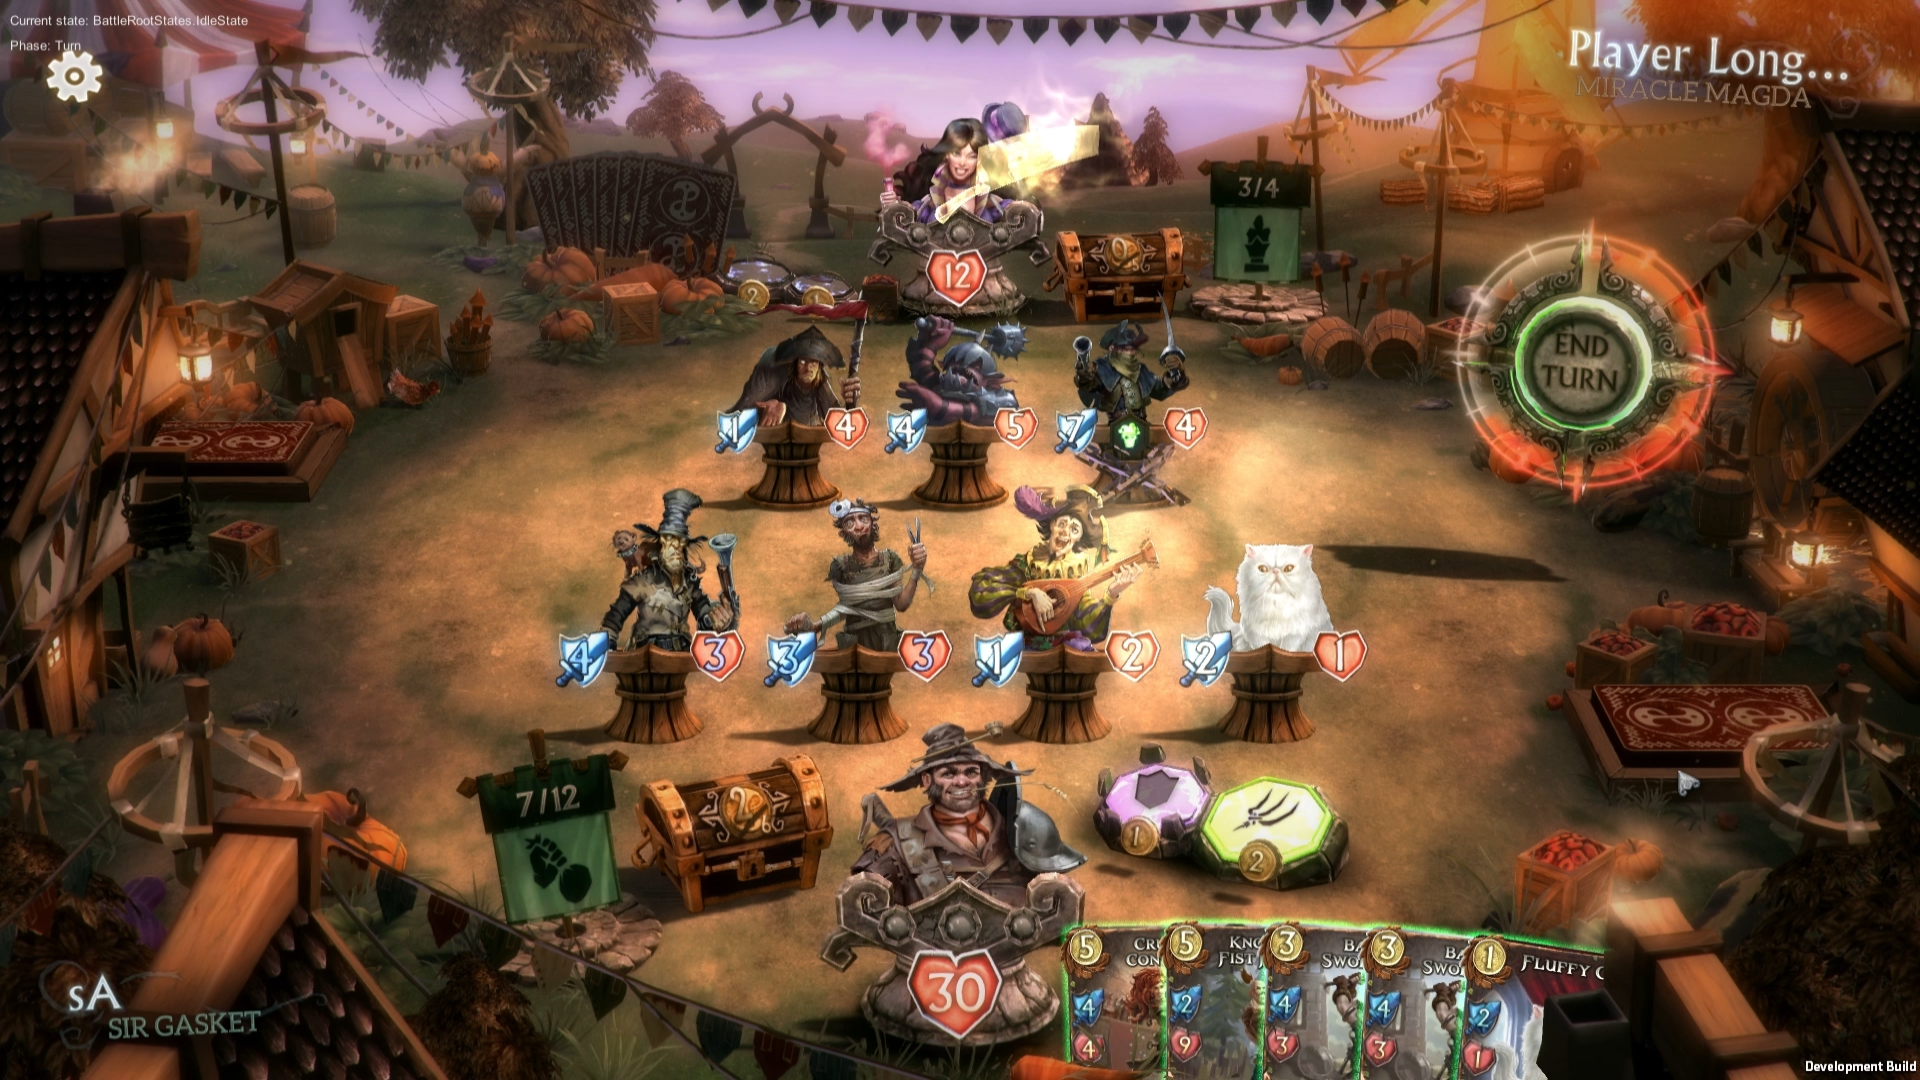 The Fable Card Game That Survived The Death Of Lionhead Shuts Down In March